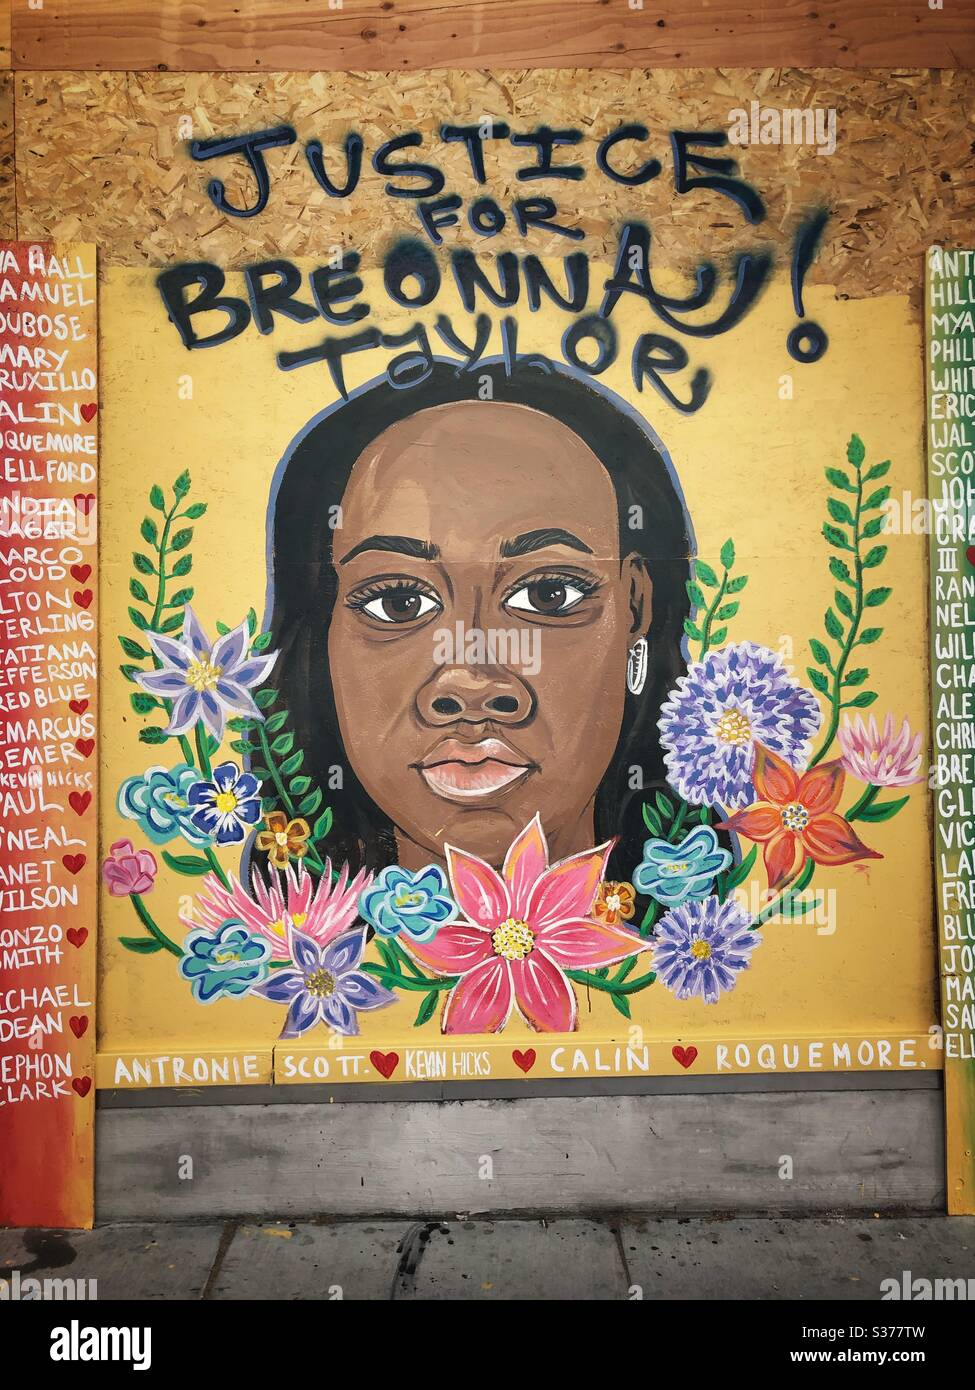 Justice for Breanna Taylor mural on a boarded up storefront in Oakland, California. Stock Photo